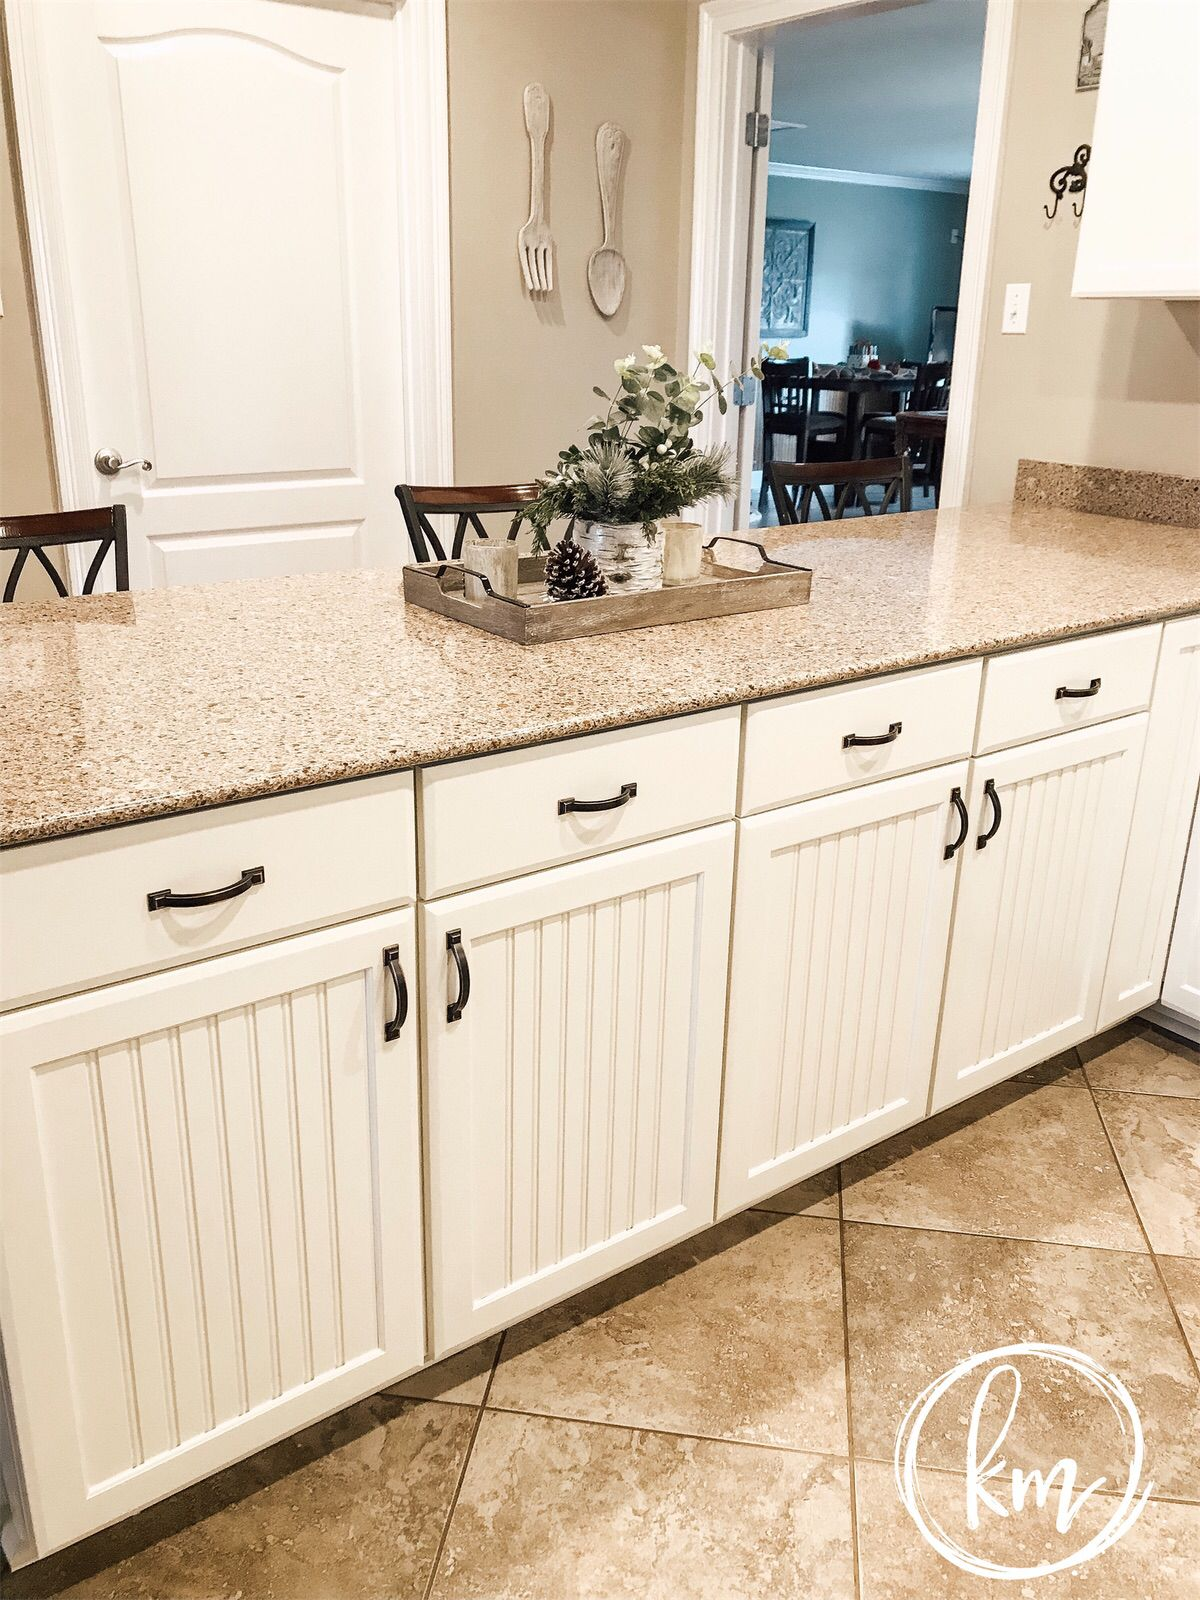 Painted Kitchen Cabinets Sherwin Williams Dover White Beadboard Kitchen New Kitchen Cabinets Kitchen Design